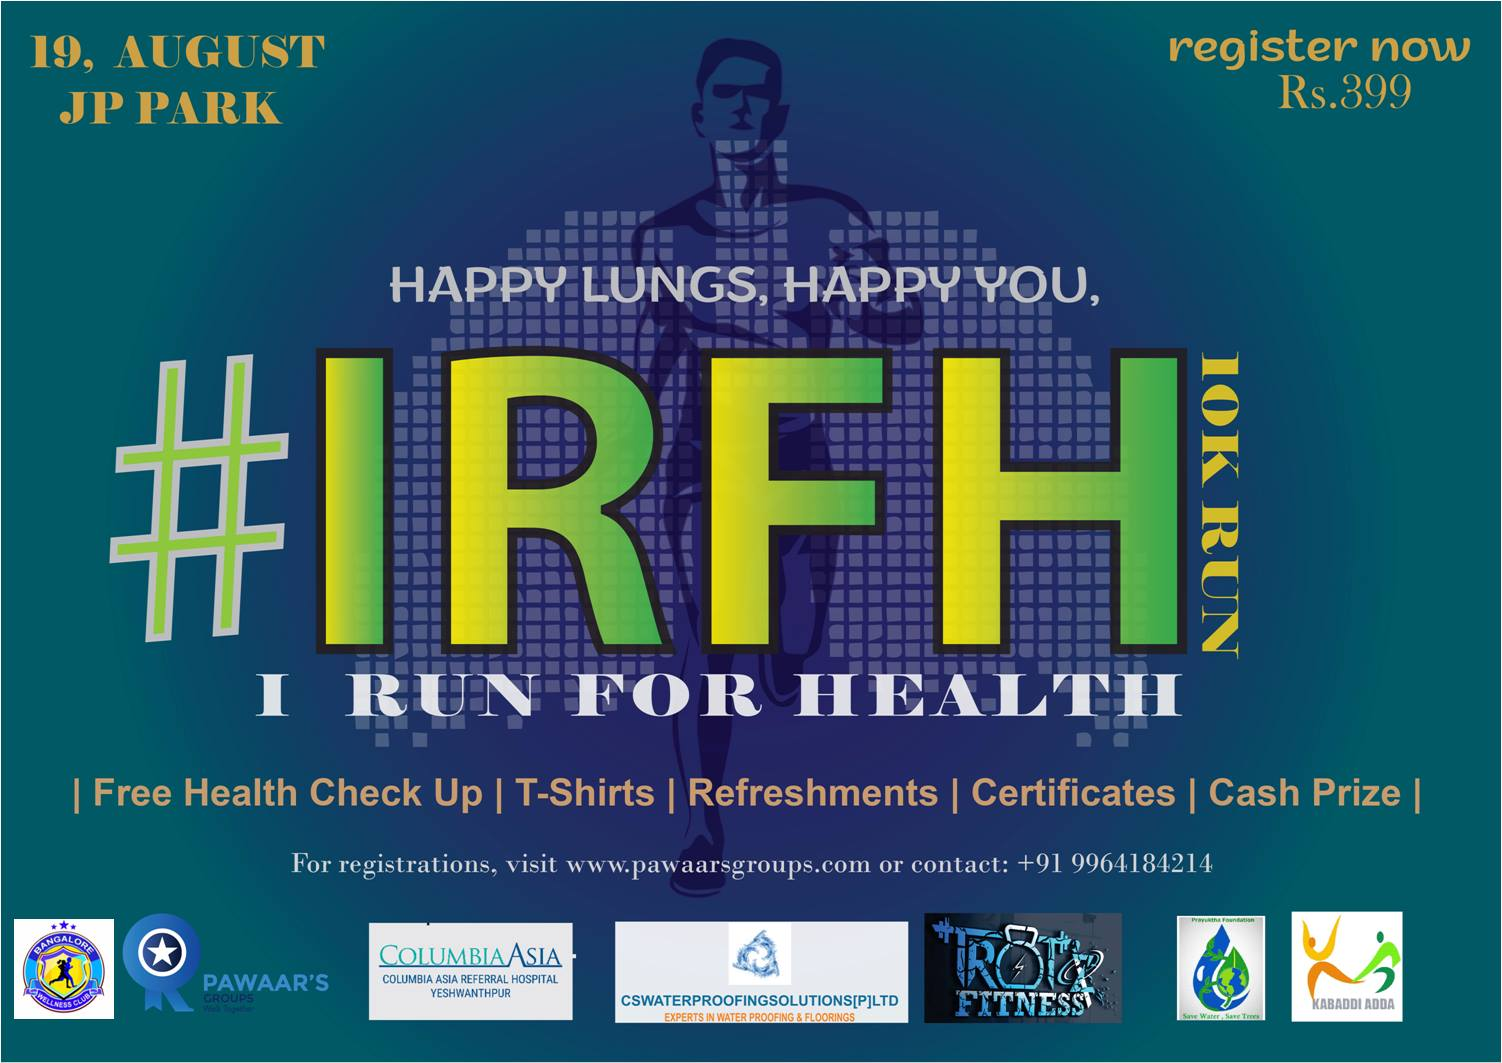 I Run For Health 10k Run